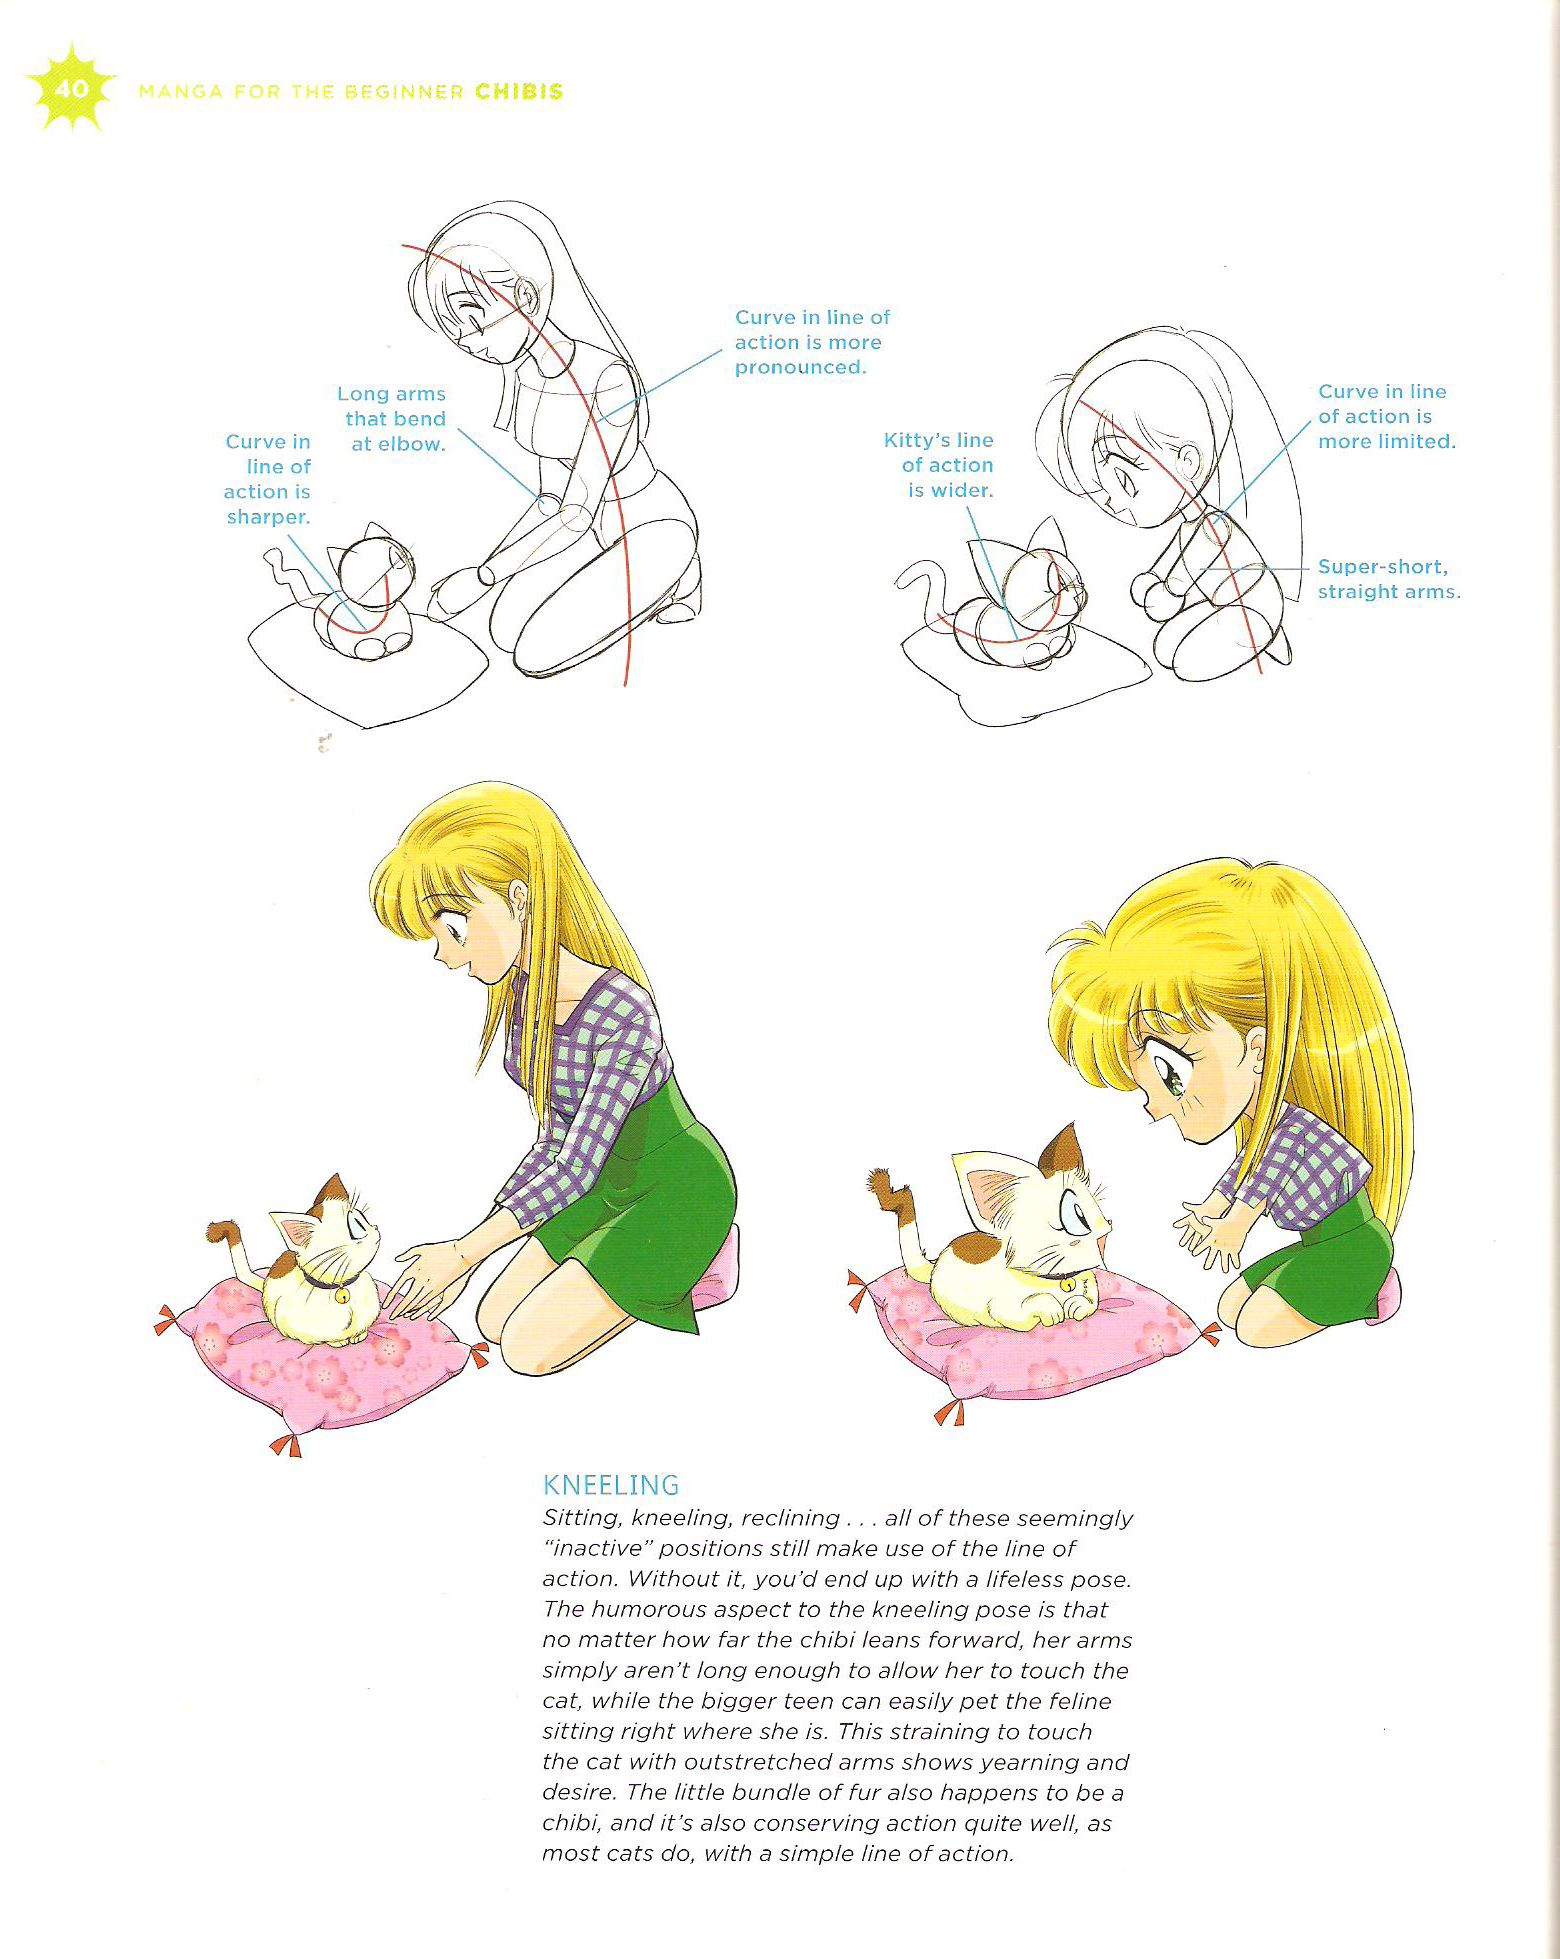 From manga for beginners book chibi by christopher hart